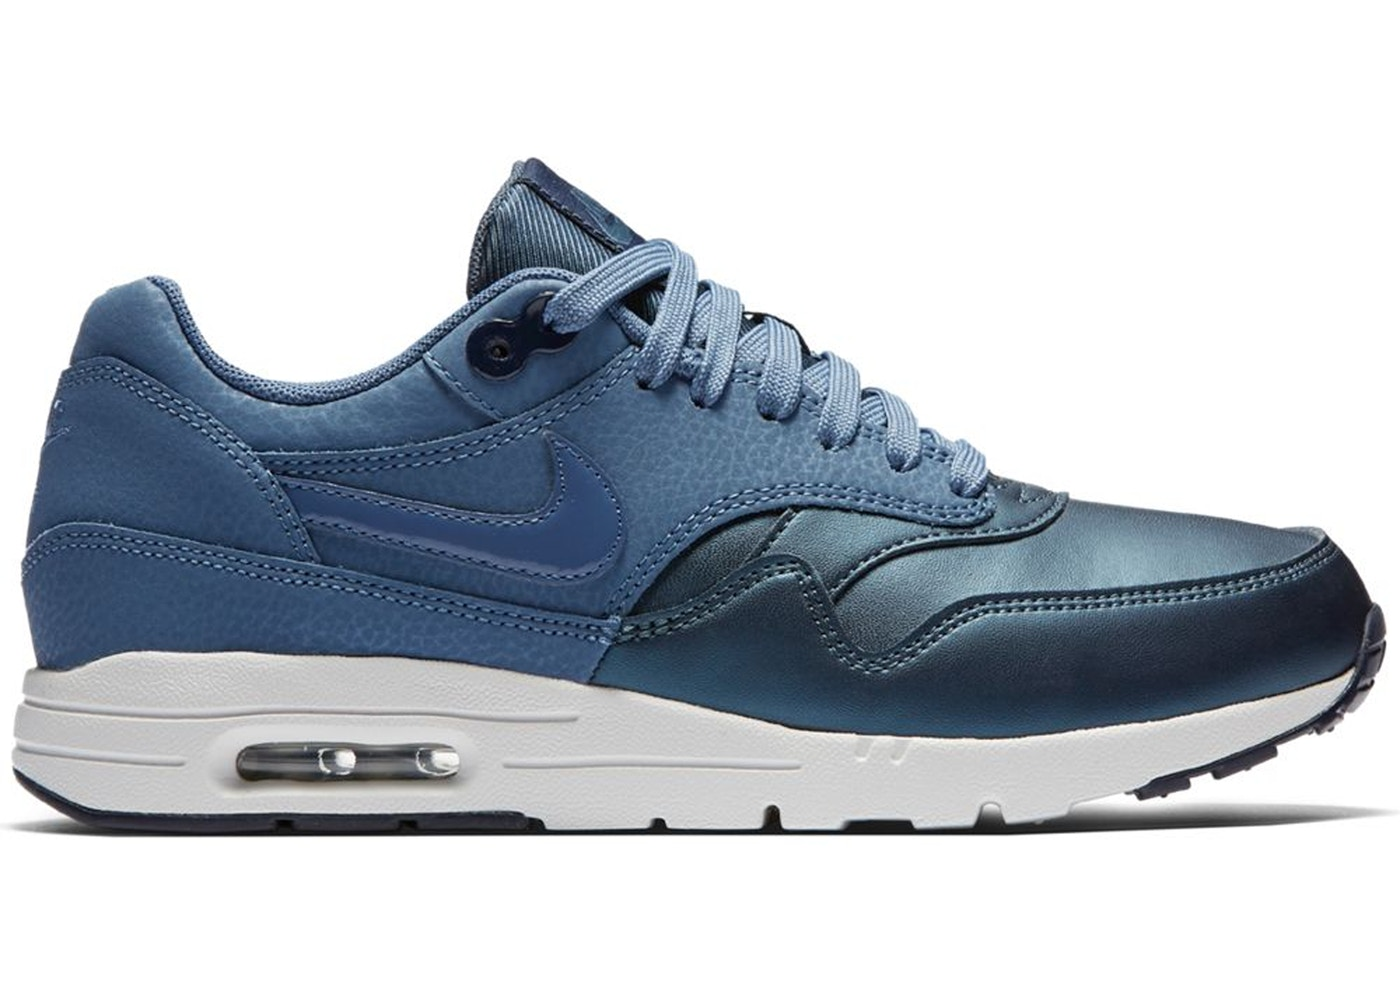 the latest 482e7 25111 Nike Air Max 1 Shoes - New Highest Bids